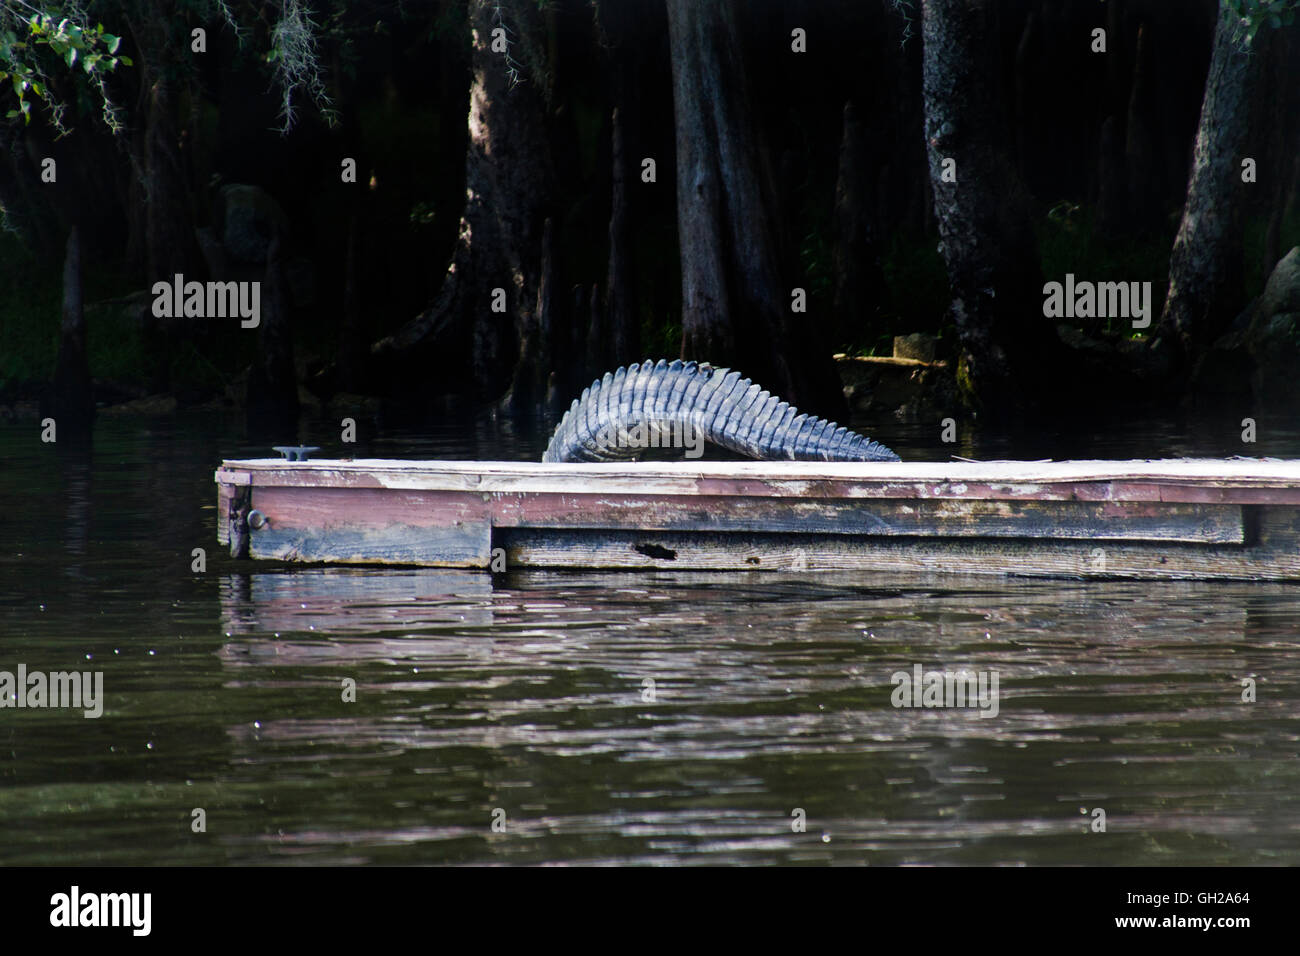 Giant Alligator tail walking off a floating dock along the Suwanee River in Central Florida - Stock Image